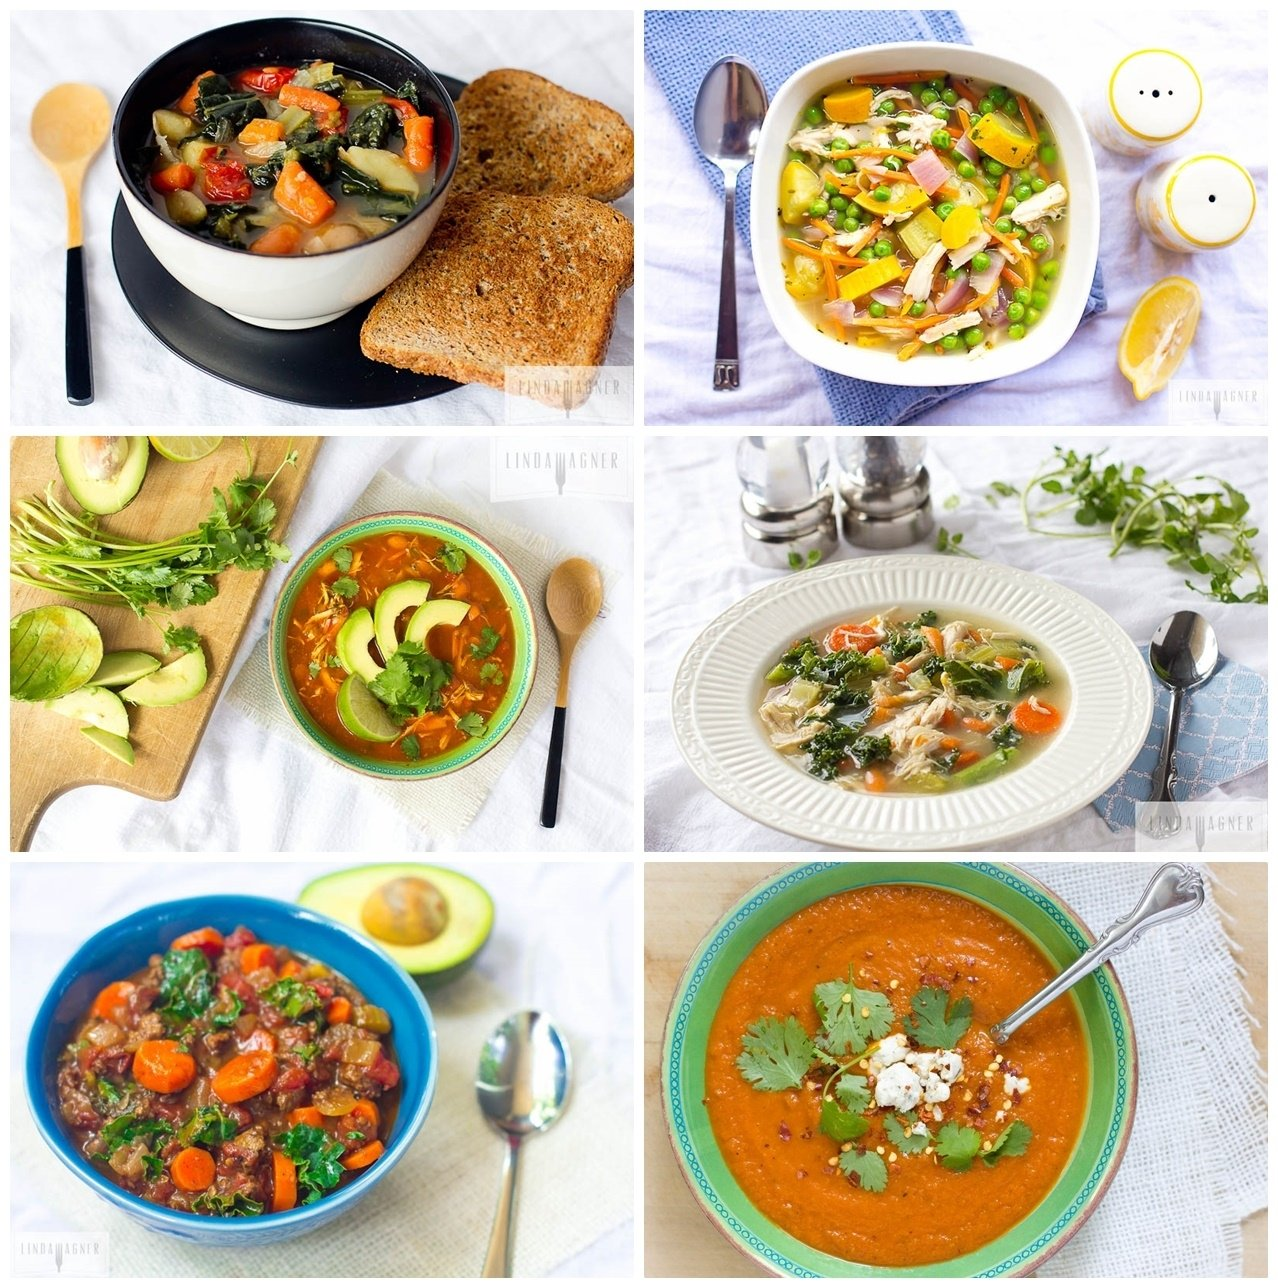 10 Most Popular Meal Ideas For Weight Loss 6 slimming soup recipes my soup diet for weight loss linda wagner 2020